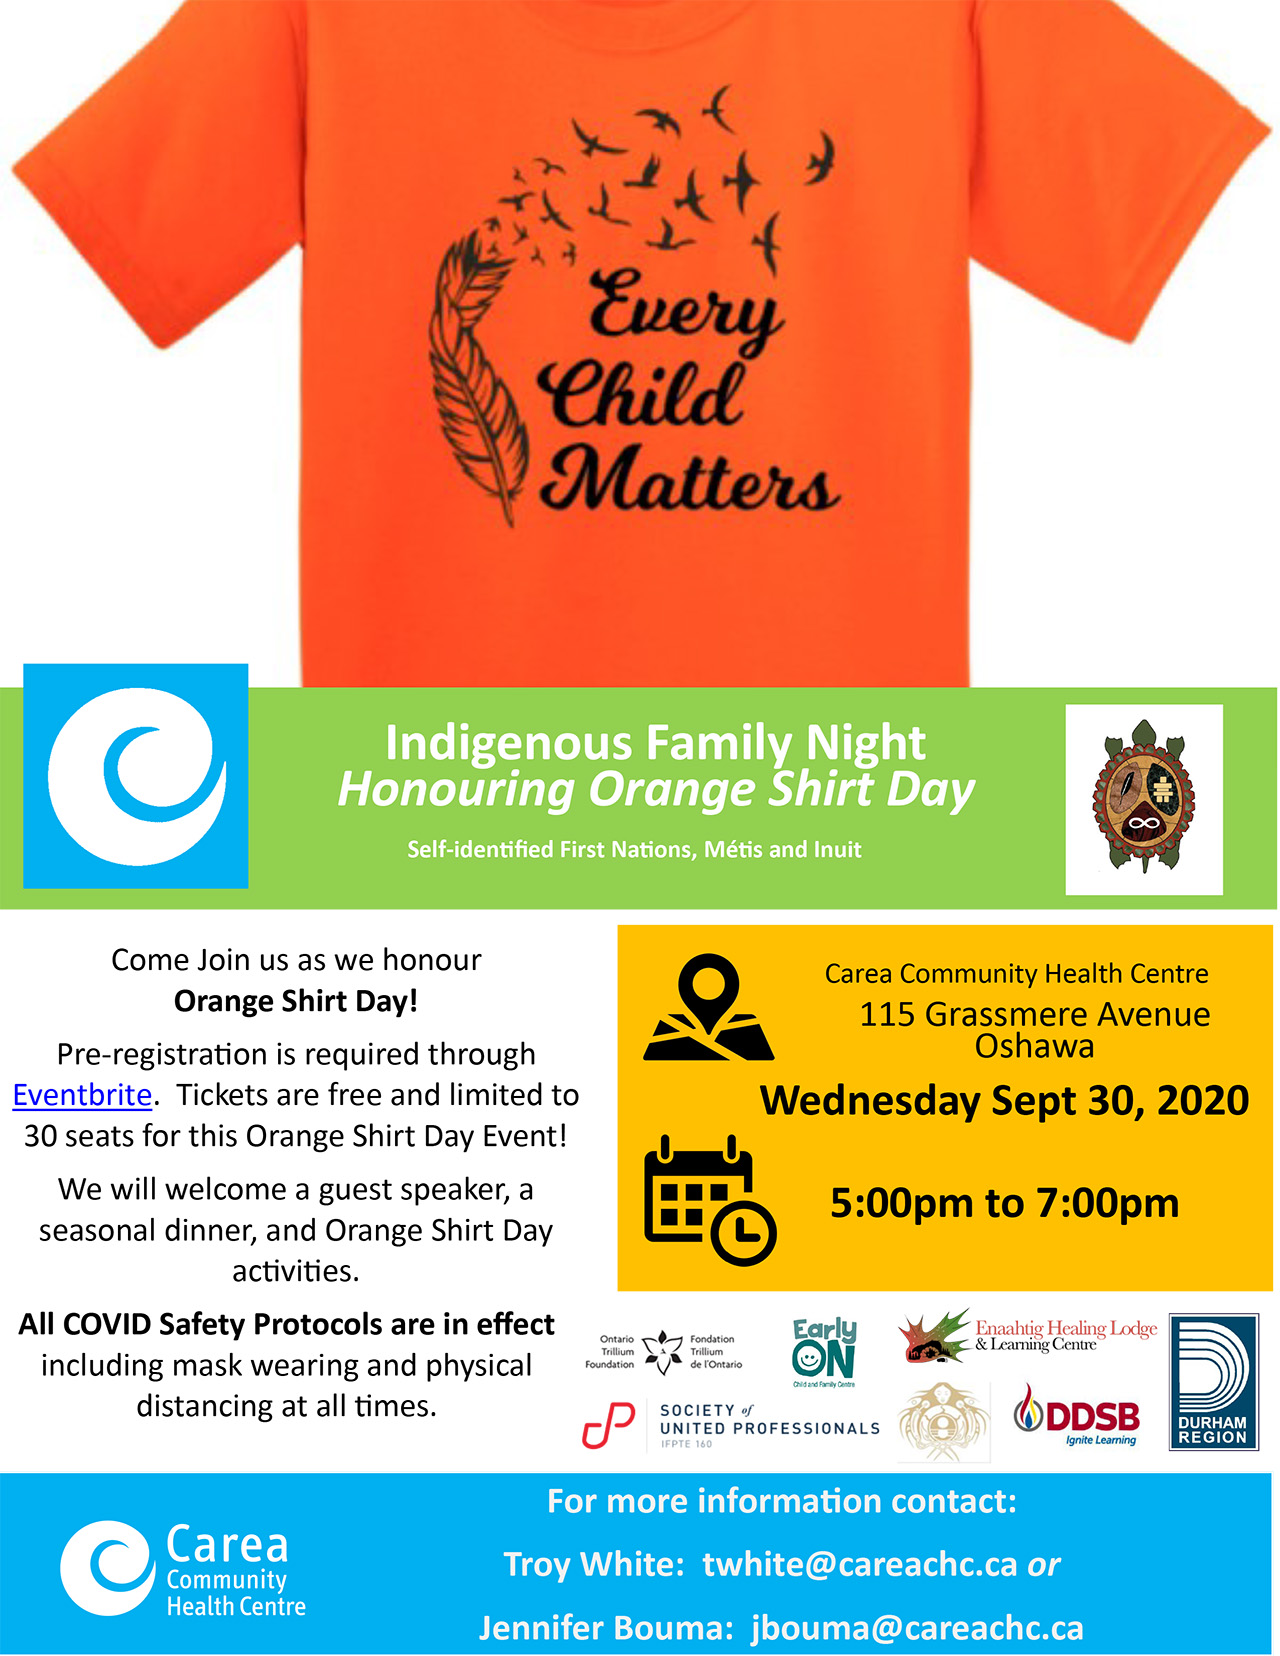 Carea Indigenous Family Night honouring Orange Shirt Day